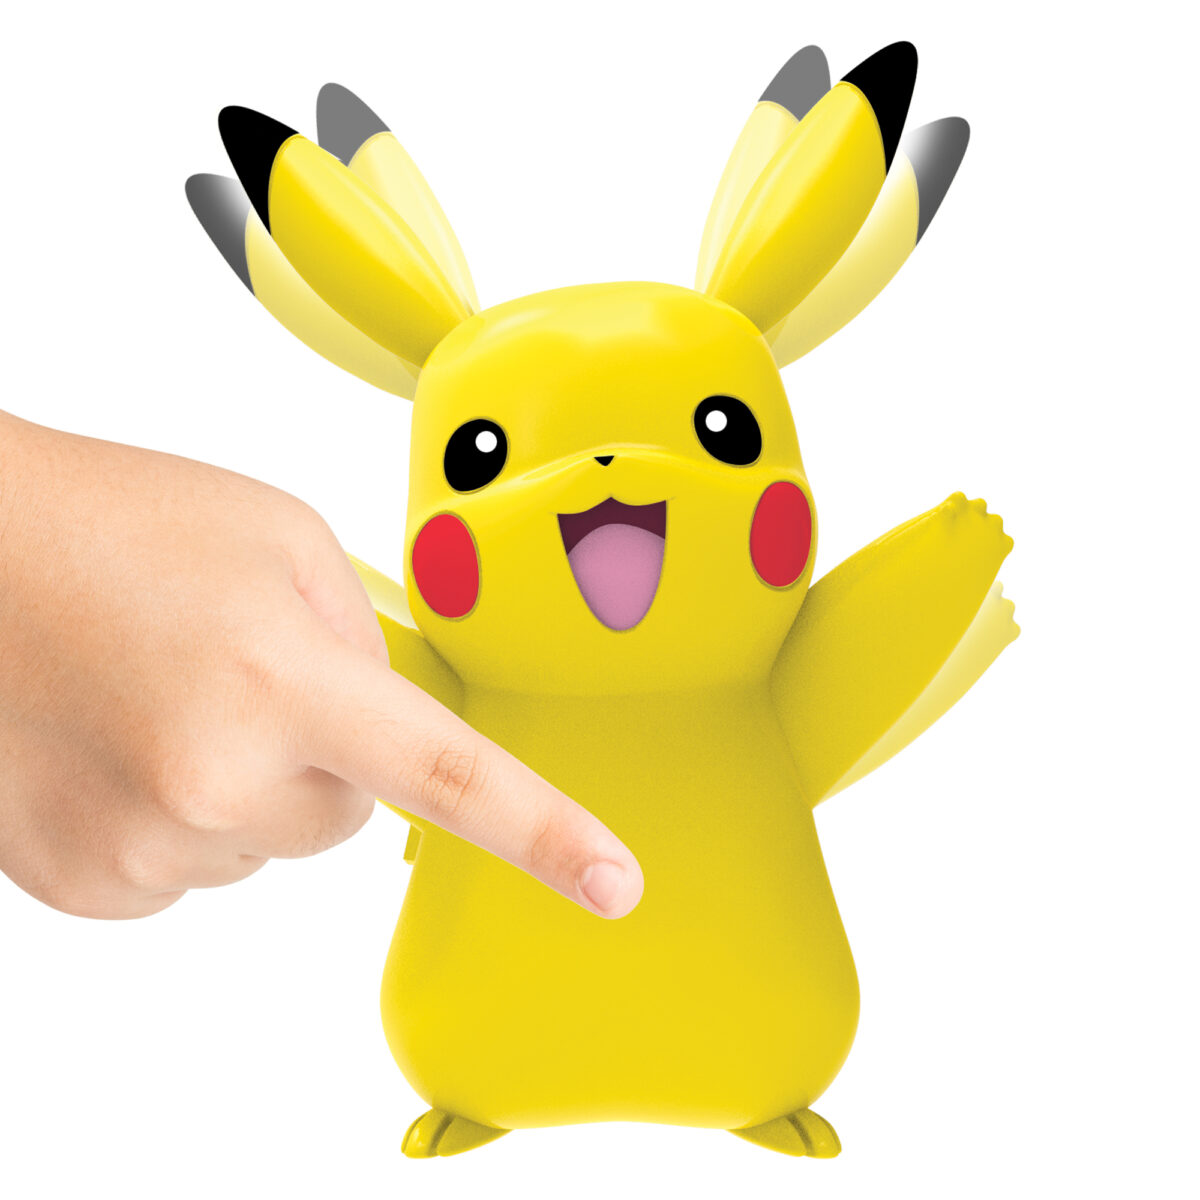 Image of Pikachu in action